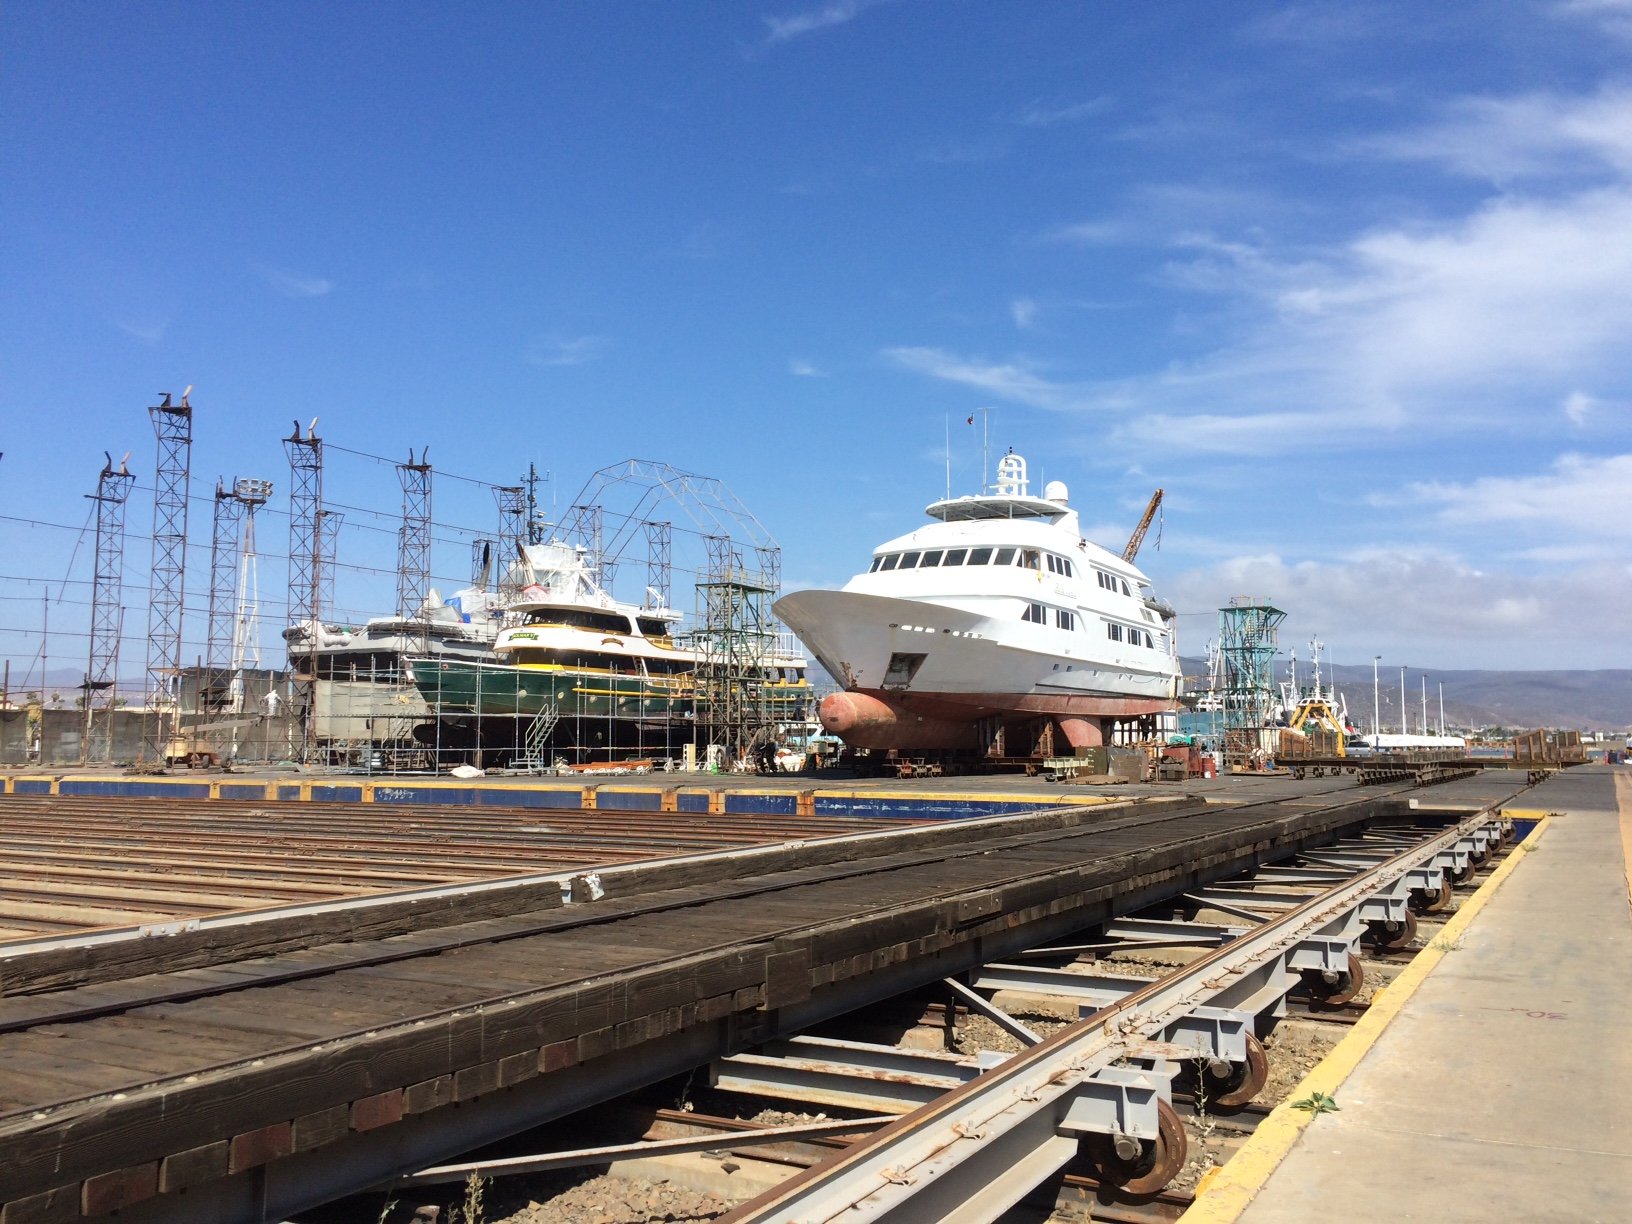 The Nautilus Belle Amie at Sandiego for Refit!